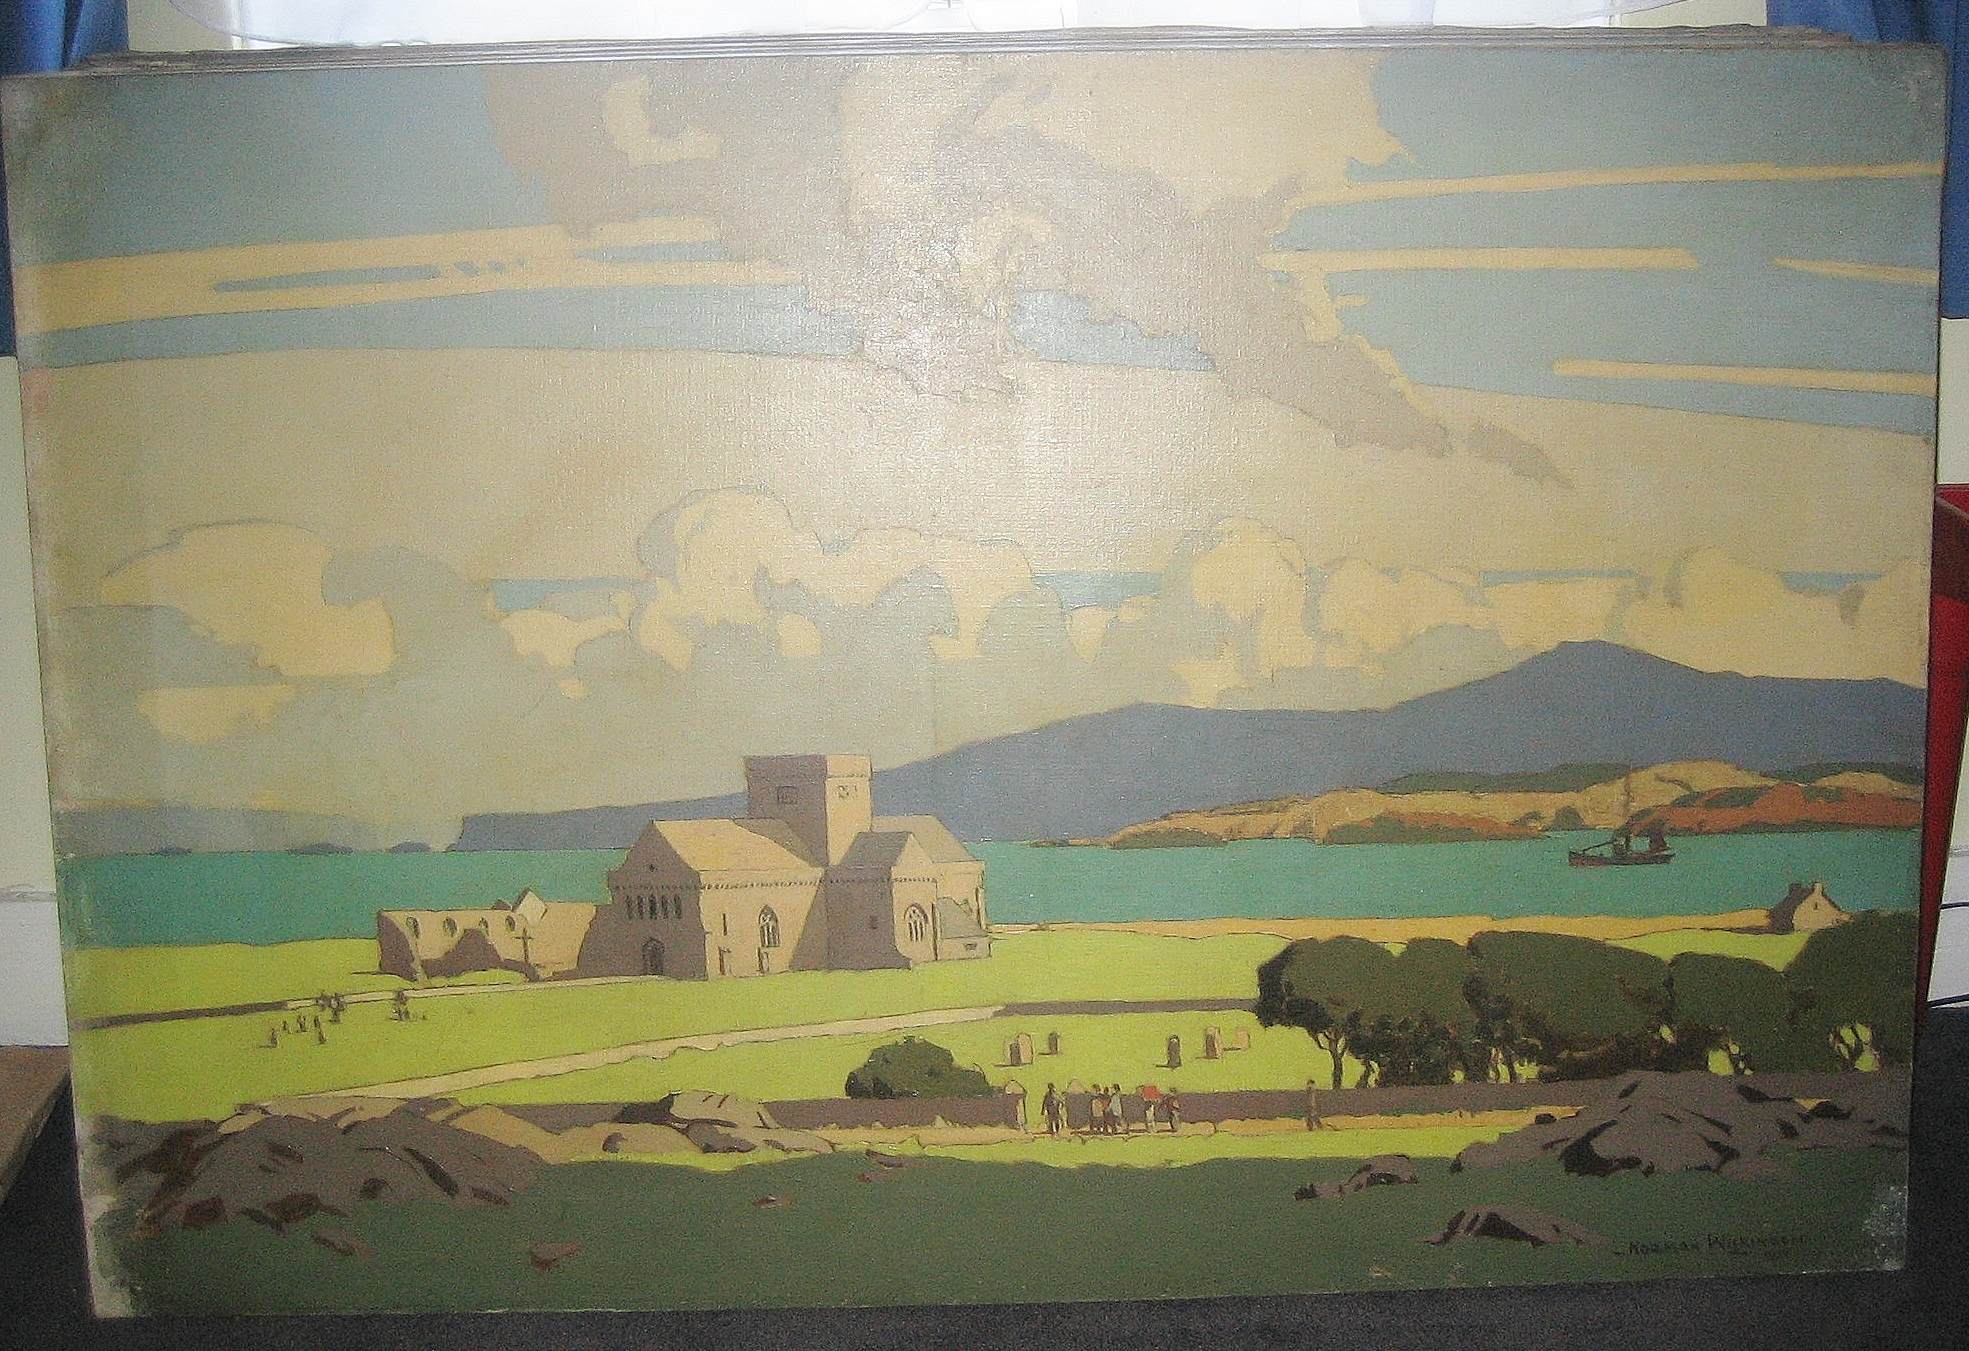 iona-cathedral-1928-wilkinson-45x30ins